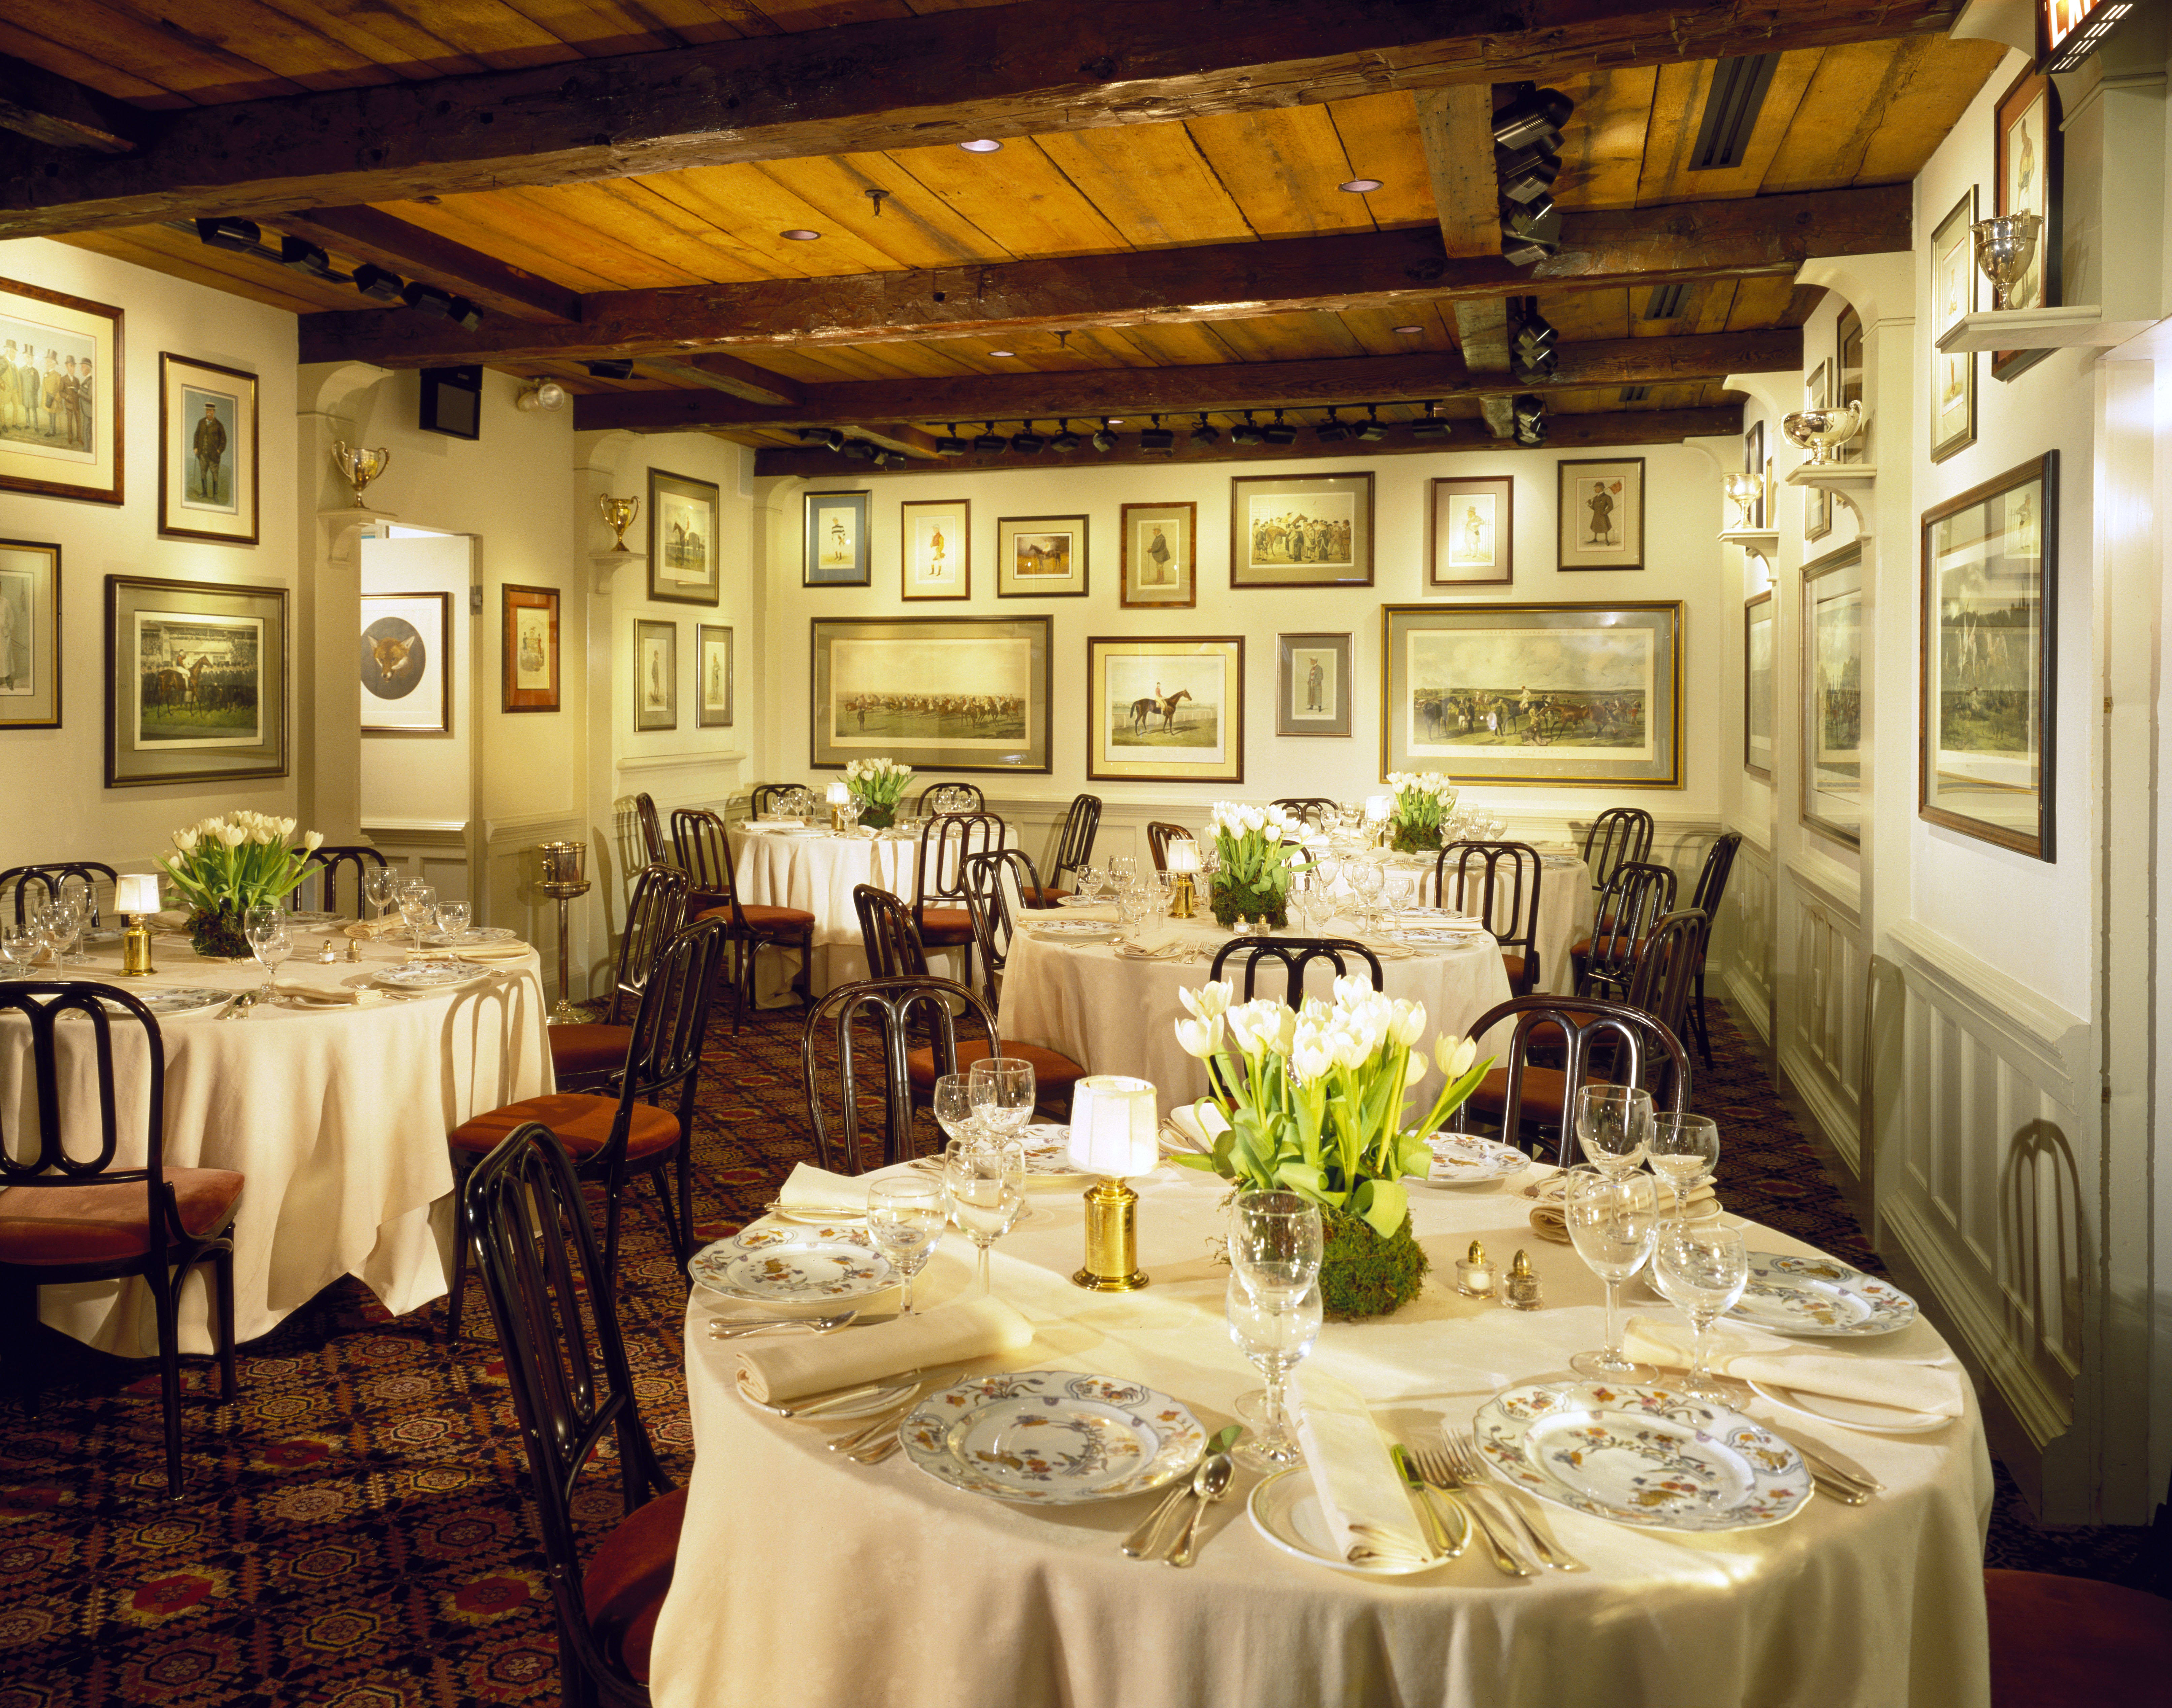 Middleburg Room at 1789 Restaurant